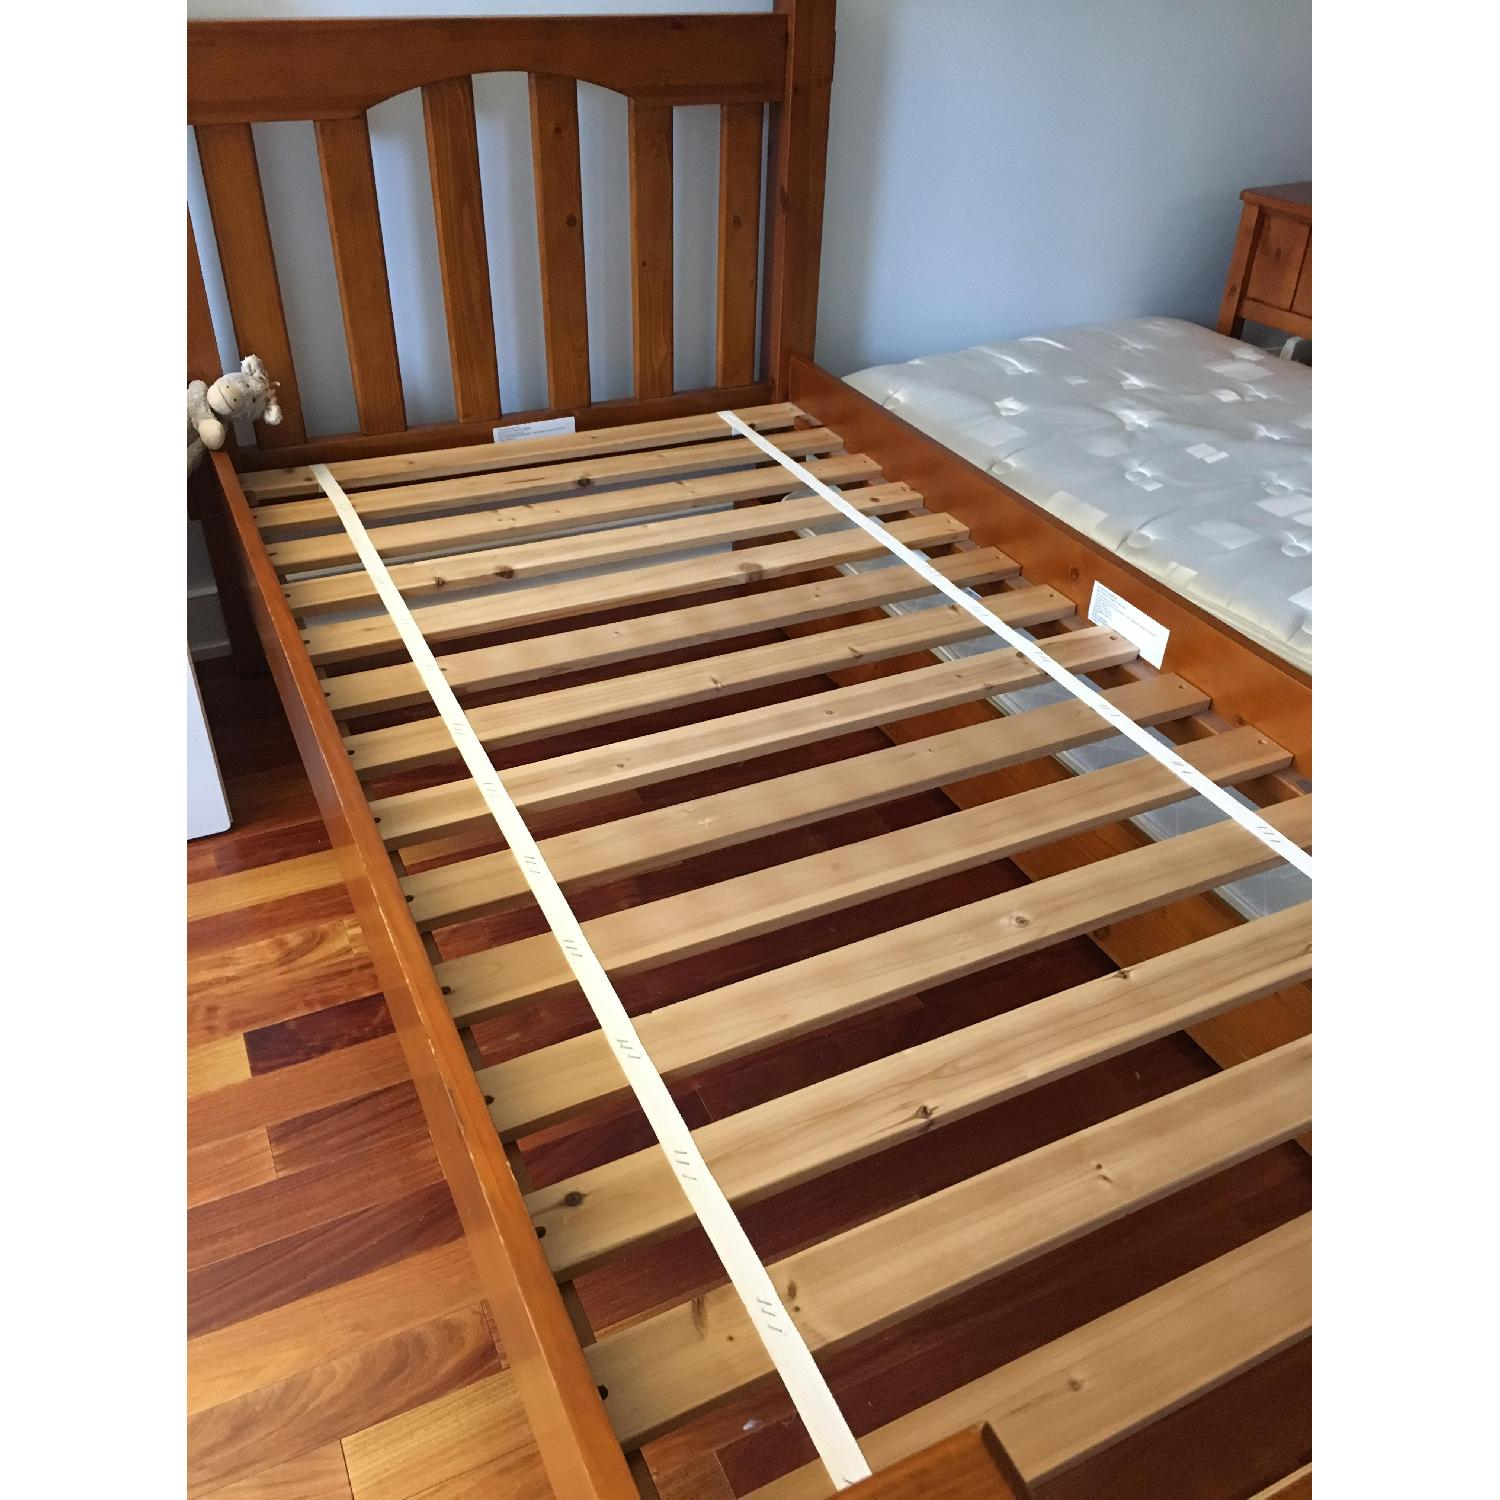 Pottery Barn Kendall Twin Bed w/ Trundle - image-8